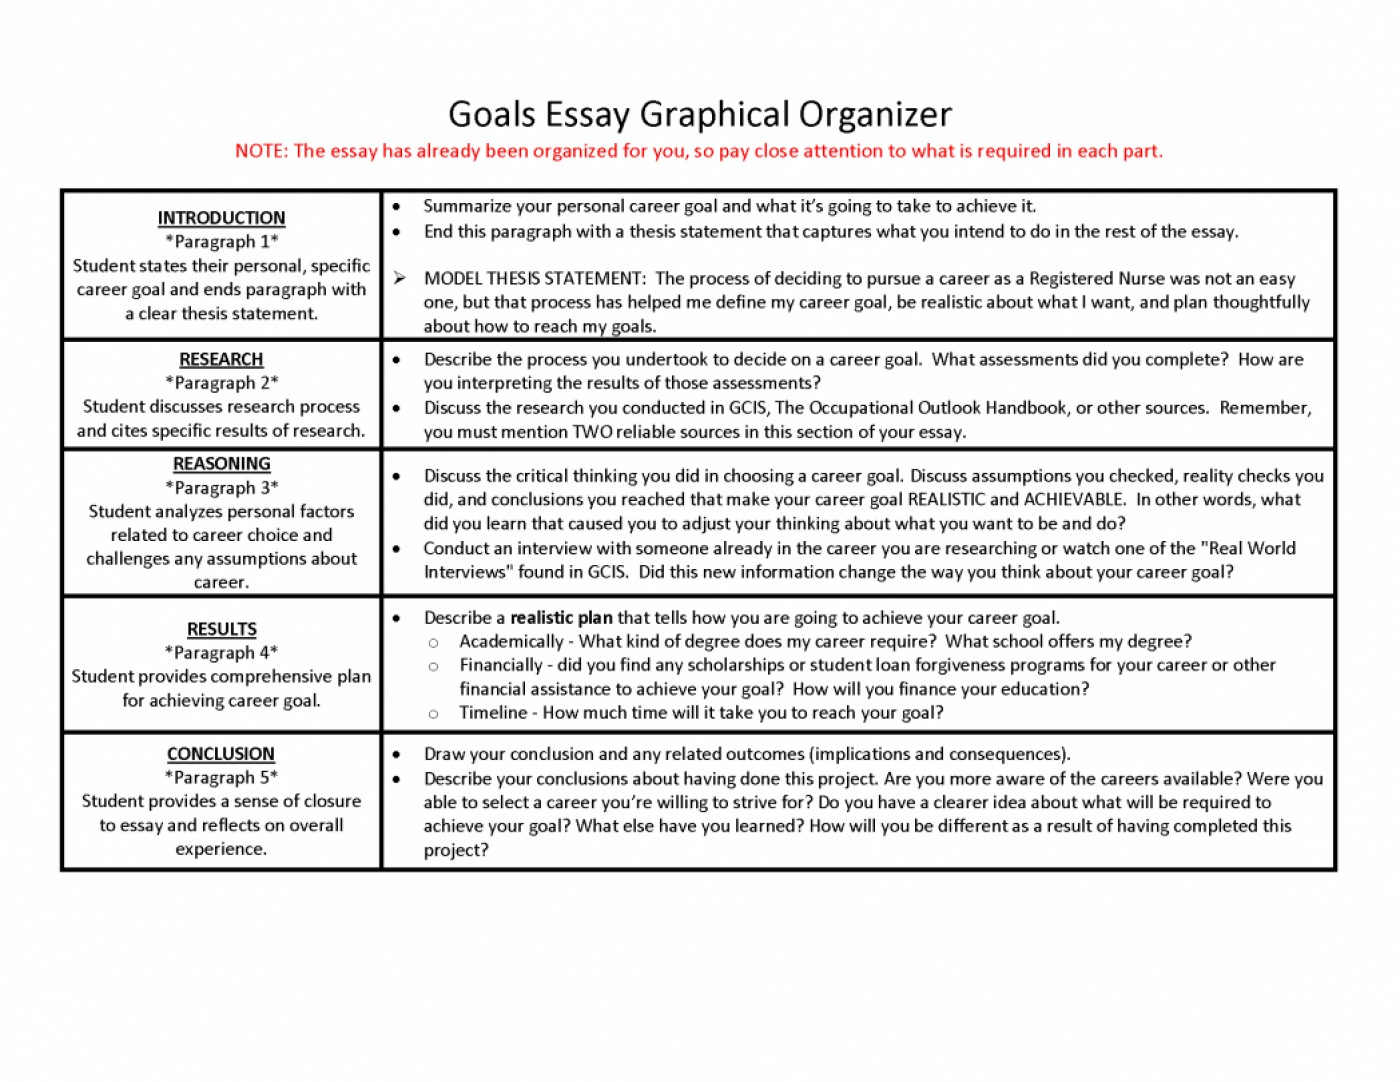 014 My Goal Essay College Goals Template Future Essays Lochhaas How Will Help Me Achieve 1048x810 Shocking Flight Attendant For High School 500 Words 1400